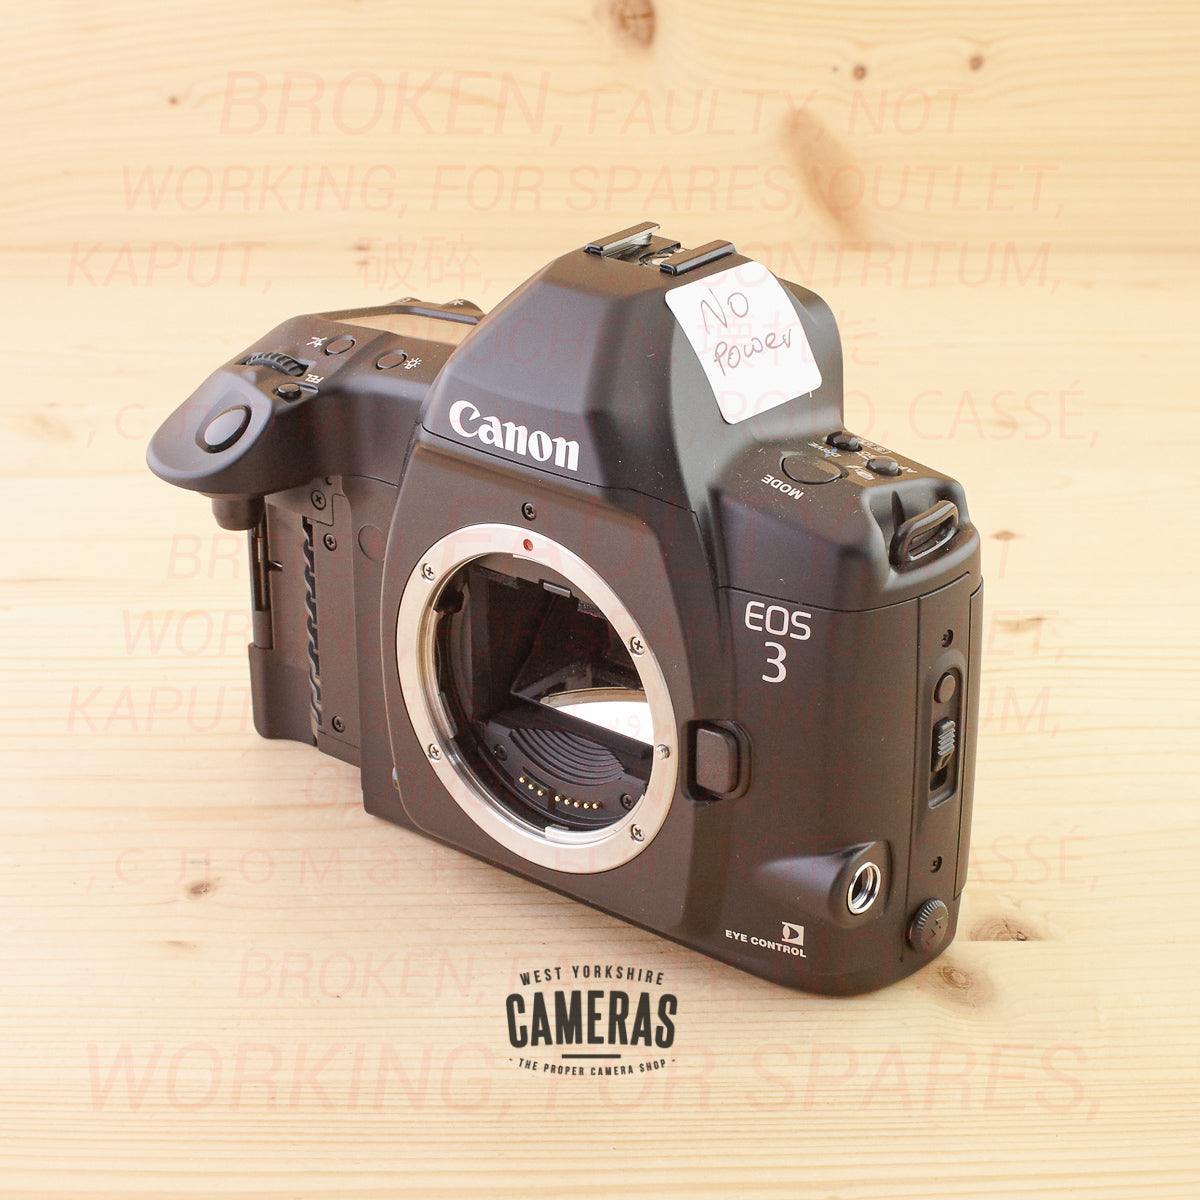 [OUTLET] Canon EOS 3 Body B